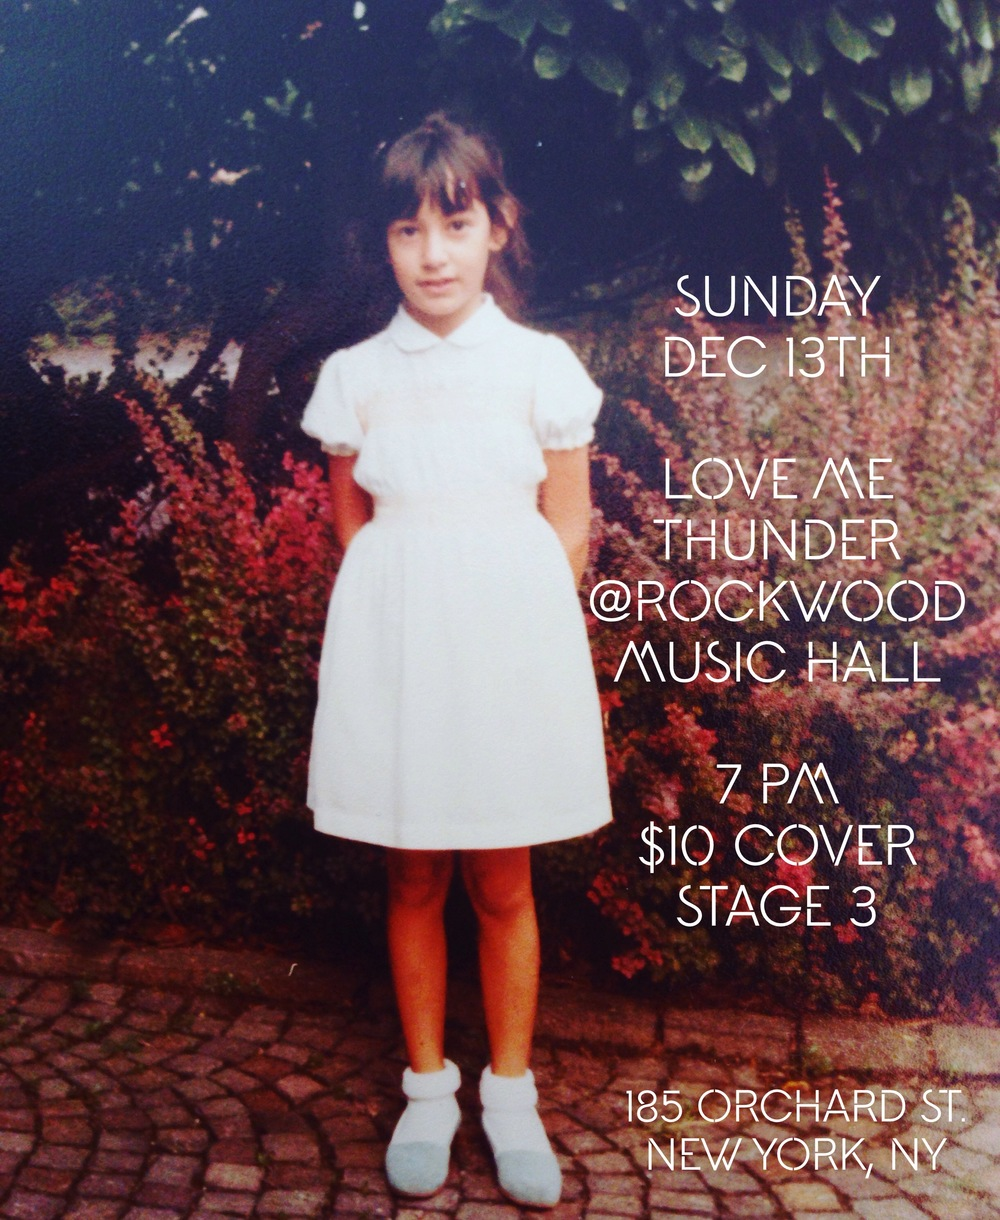 December 13 LOVE ME THUNDER @ Rockwood Music Hall NYC